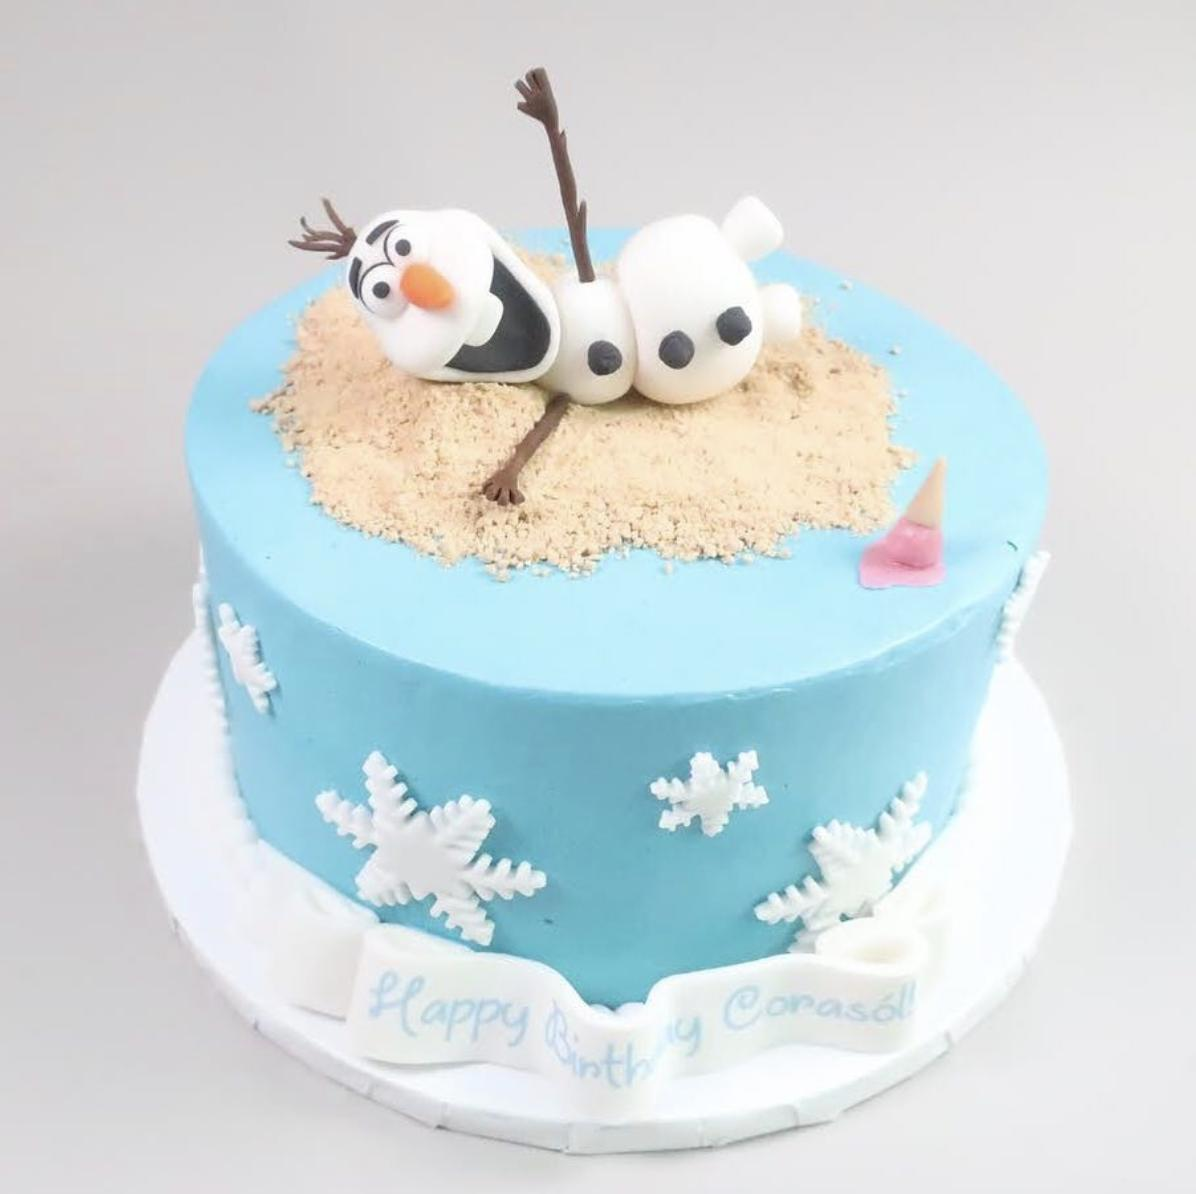 This #NYC weather has us feeling like #Olaf on this cake from last weekend. Somewhere caught between #Spring, #Summer, and #Winter. One day it's 60 degrees and sunny, the next day we have our winter jacket on! Now today, rain! Who is ready for some #Spring? #Frozen